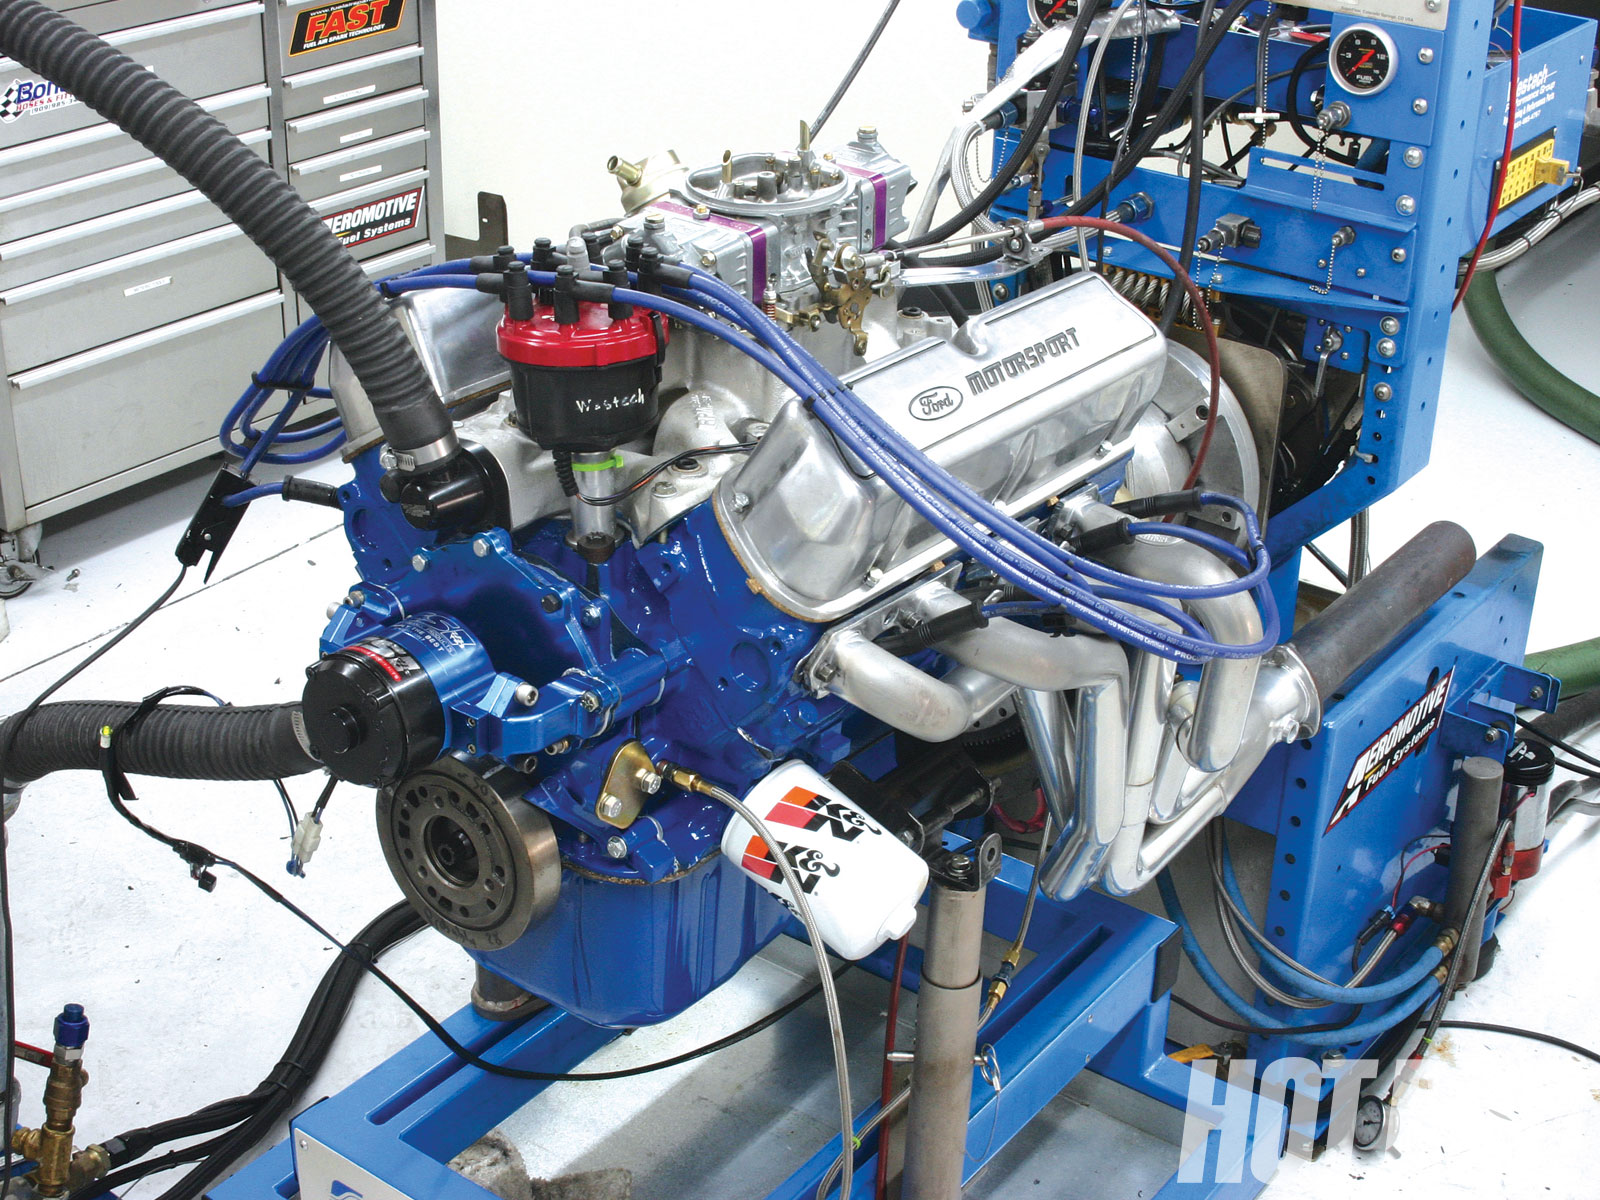 hight resolution of hrdp 1001 01 muscle car engine shootout